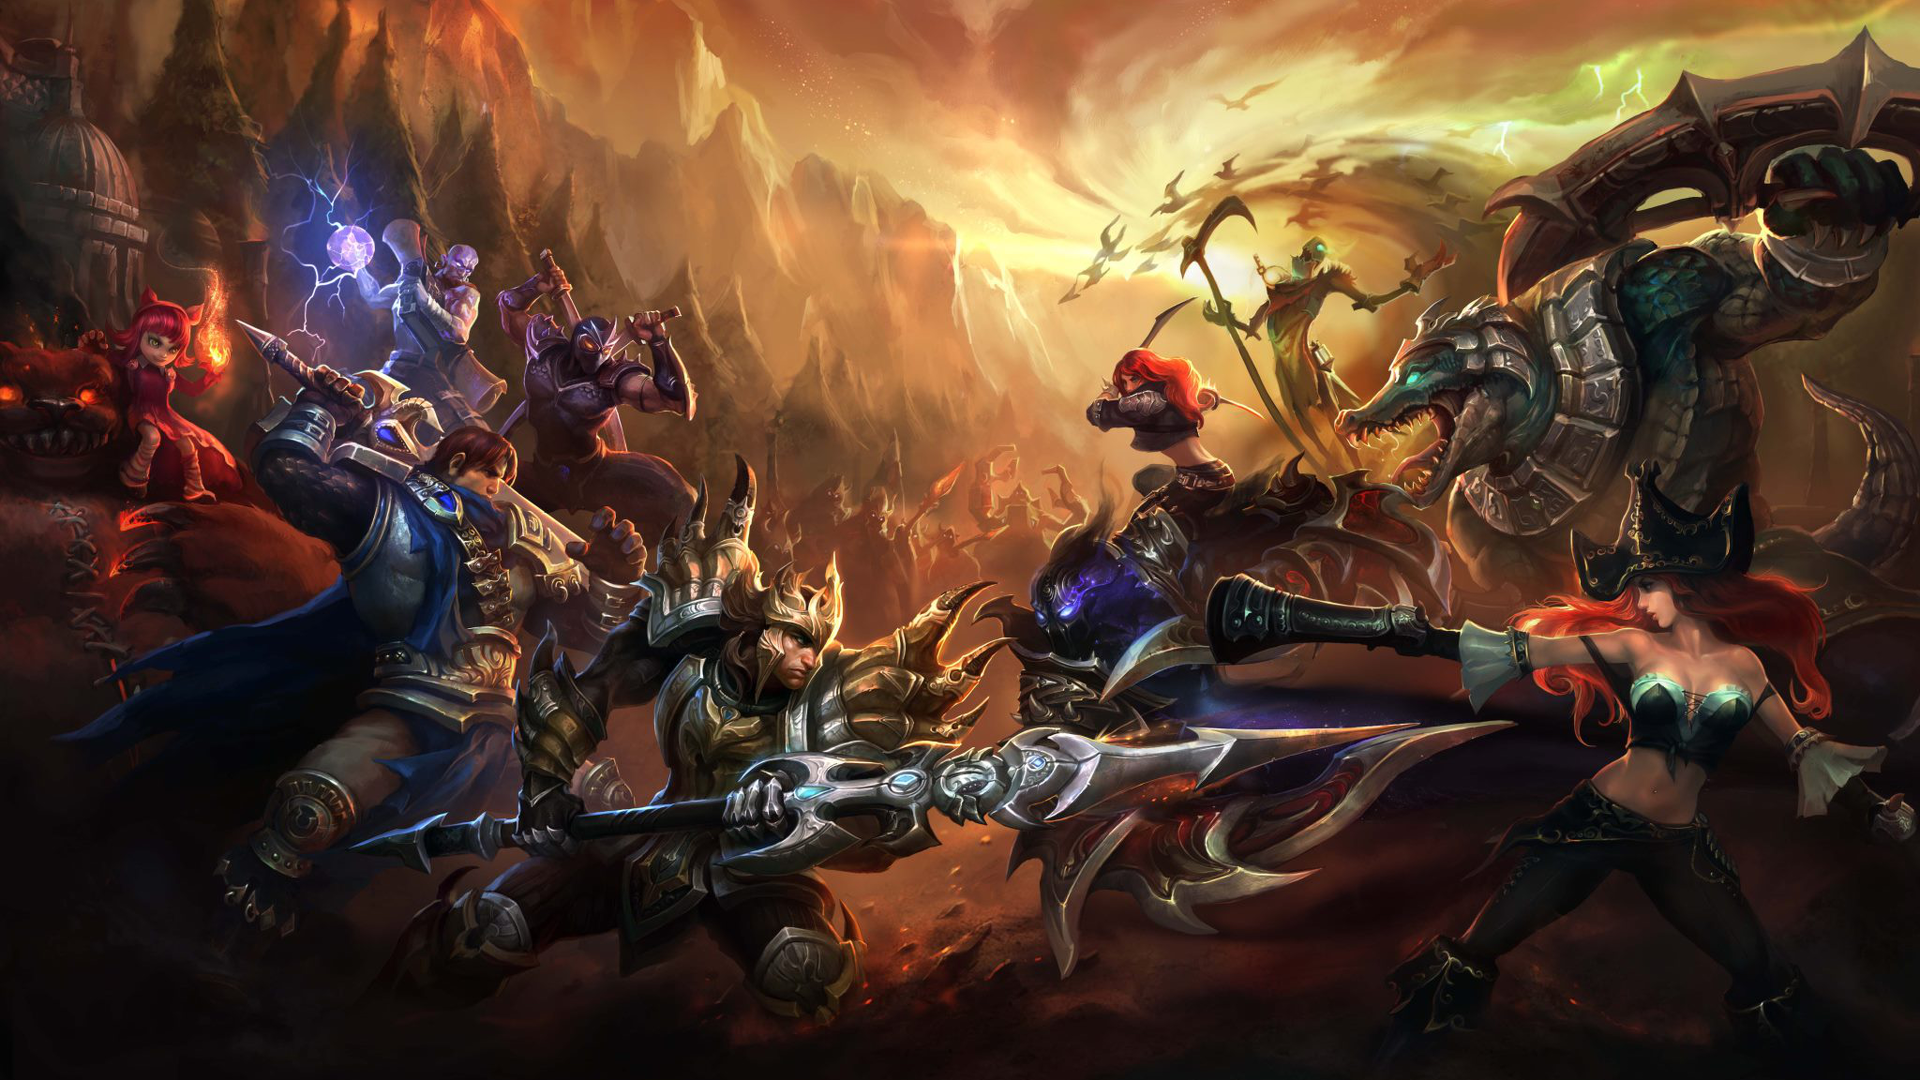 Video Game - League Of Legends  Miss Fortune (League Of Legends) Renekton (League Of Legends) Katarina (League Of Legends) Fiddlesticks (League Of Legends) Jarvan IV (League Of Legends) Nocturne (League of Legends) Garen (League Of Legends) Tibbers (League Of Legends) Annie (League Of Legends) Ryze (League Of Legends) Wallpaper